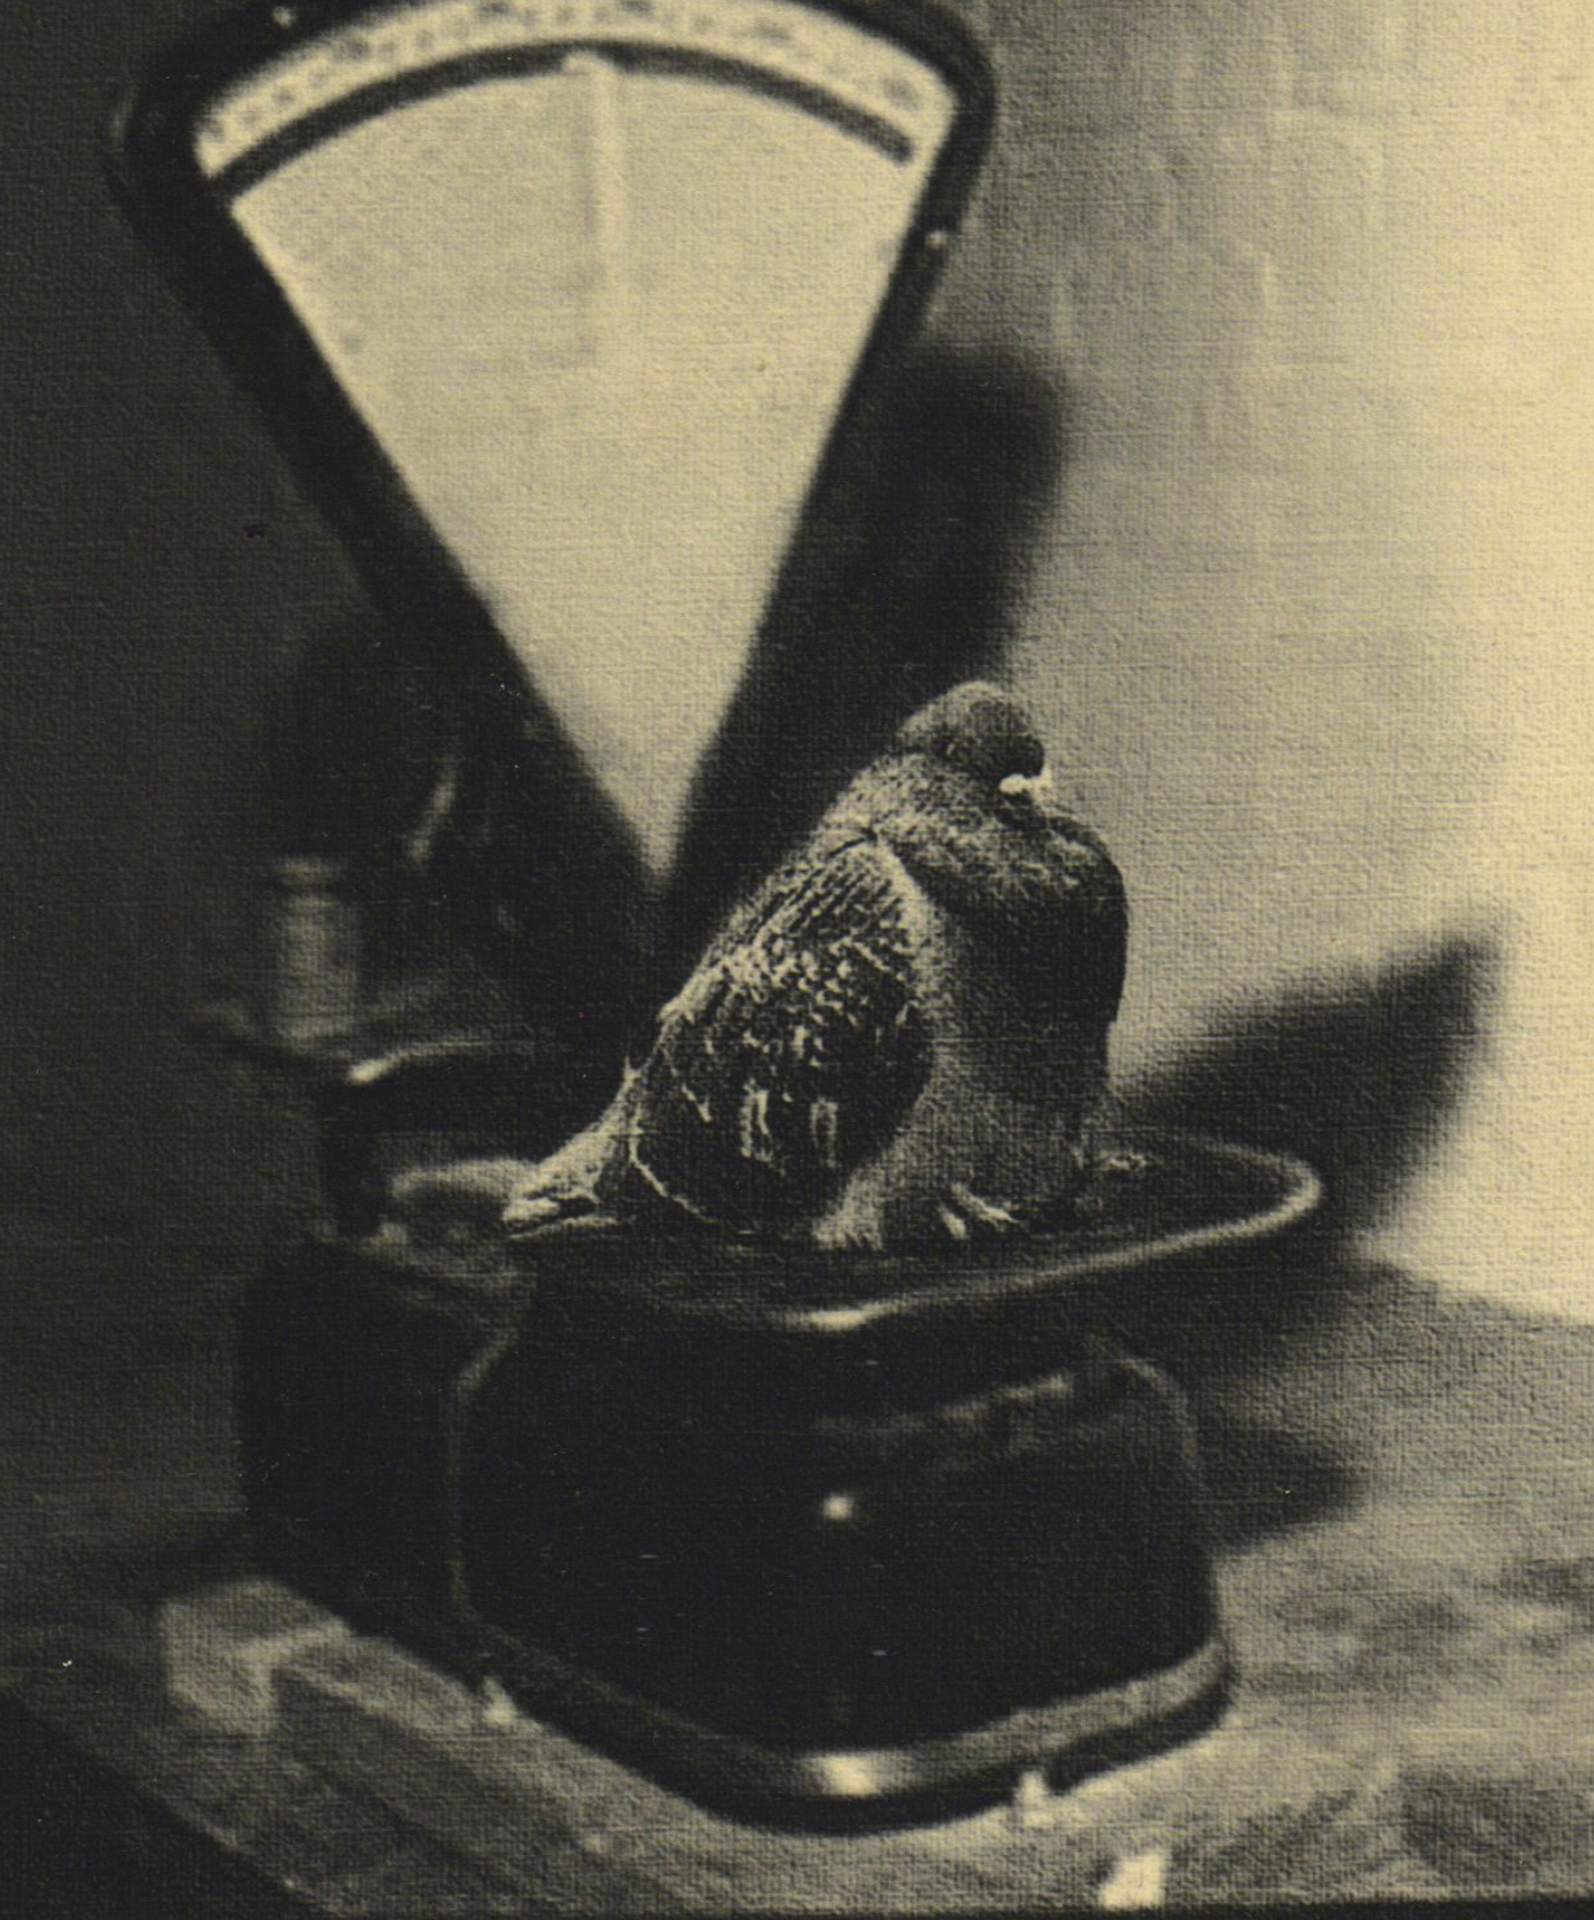 Spy-pigeon before going on a mission, 1942. The memoirs of Yan Khtovich, 2015-2017. This mockumentary project tells the story of Yan Khtovich, ornitologist working on the Spy Pigeon project during WWII